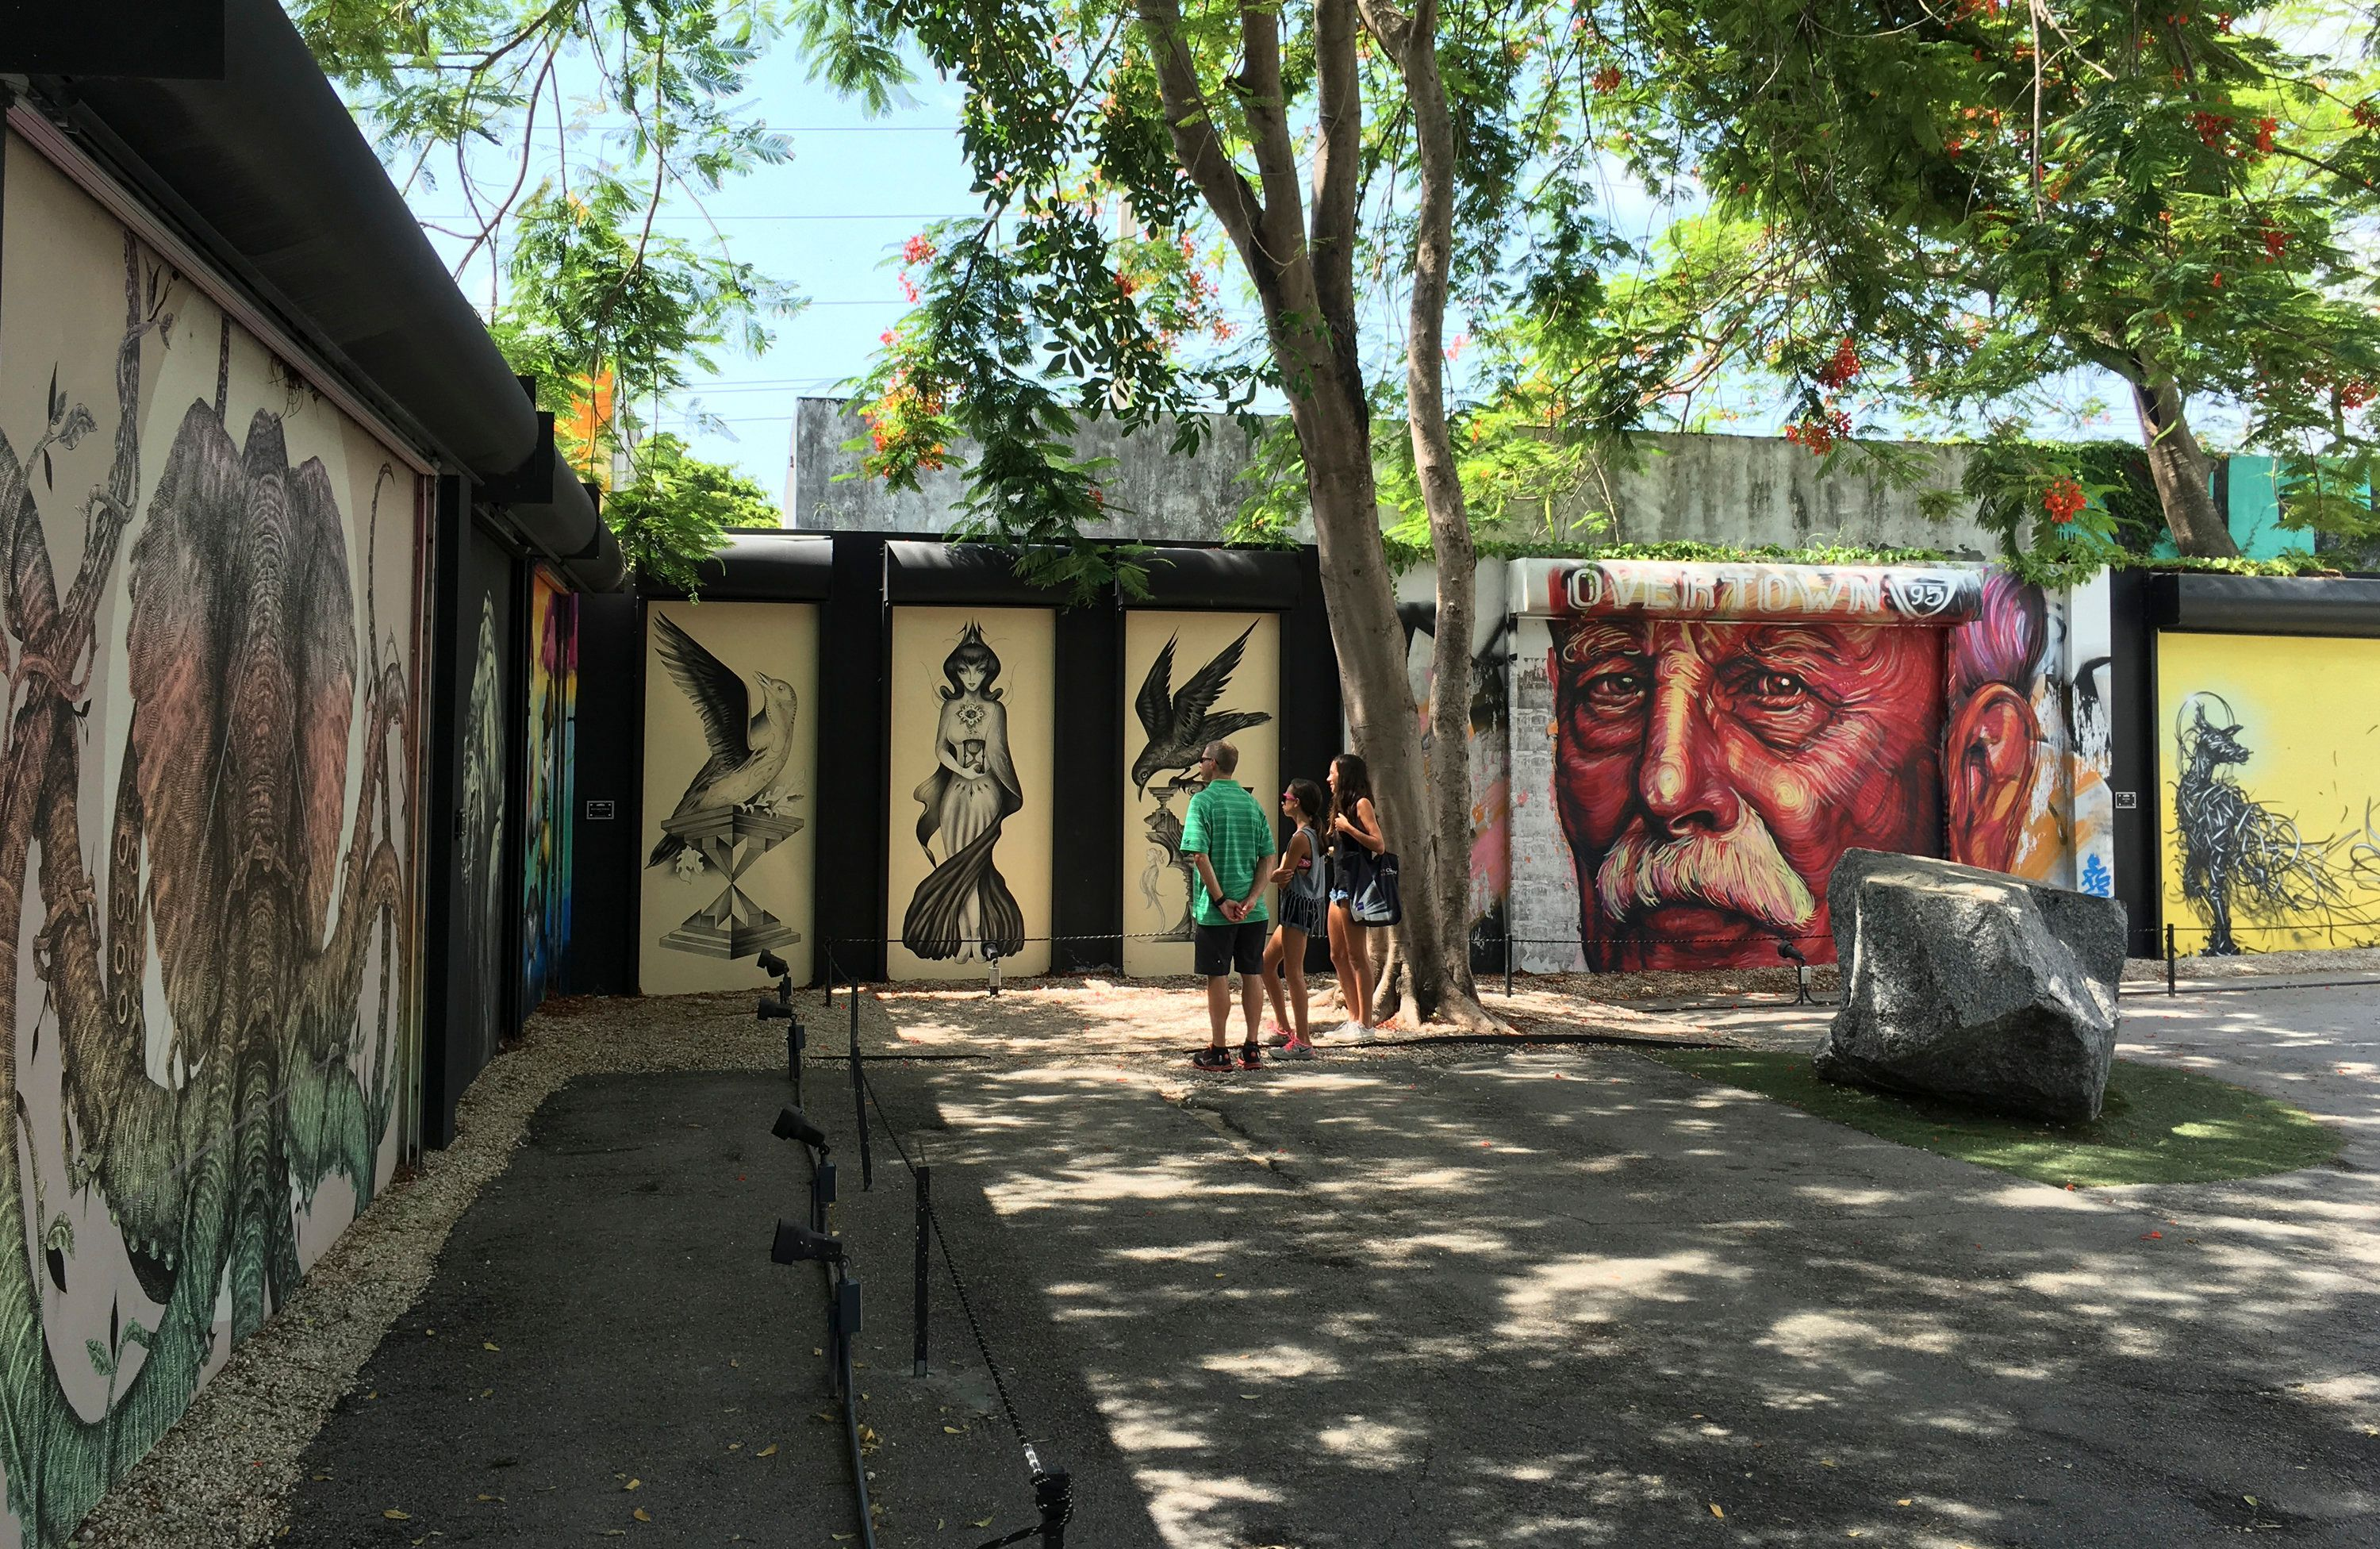 Tourists visit the Wynwood Walls, a popular outdoor graffiti exhibit that also falls in the approximately one-mile area where Florida Governor Rick Scott and state health officials announced one woman and three men contracted the Zika virus locally, in Miami, Florida July 29, 2016.   REUTERS/Zachary Fagenson